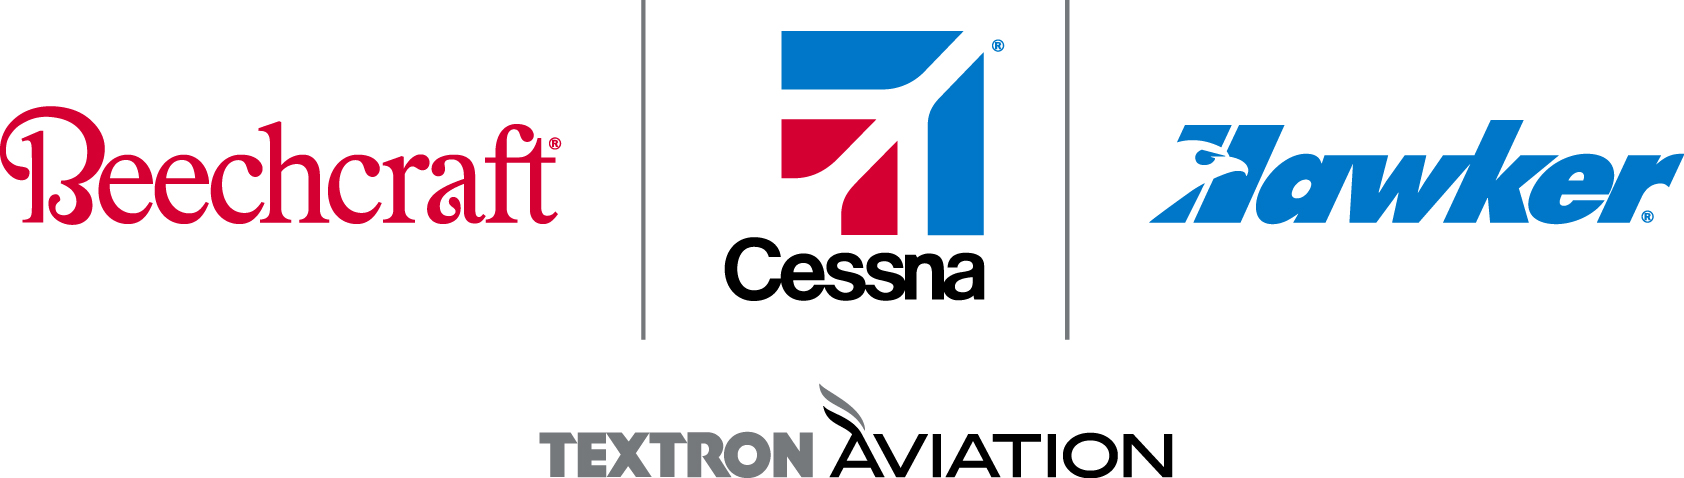 Textron Aviation